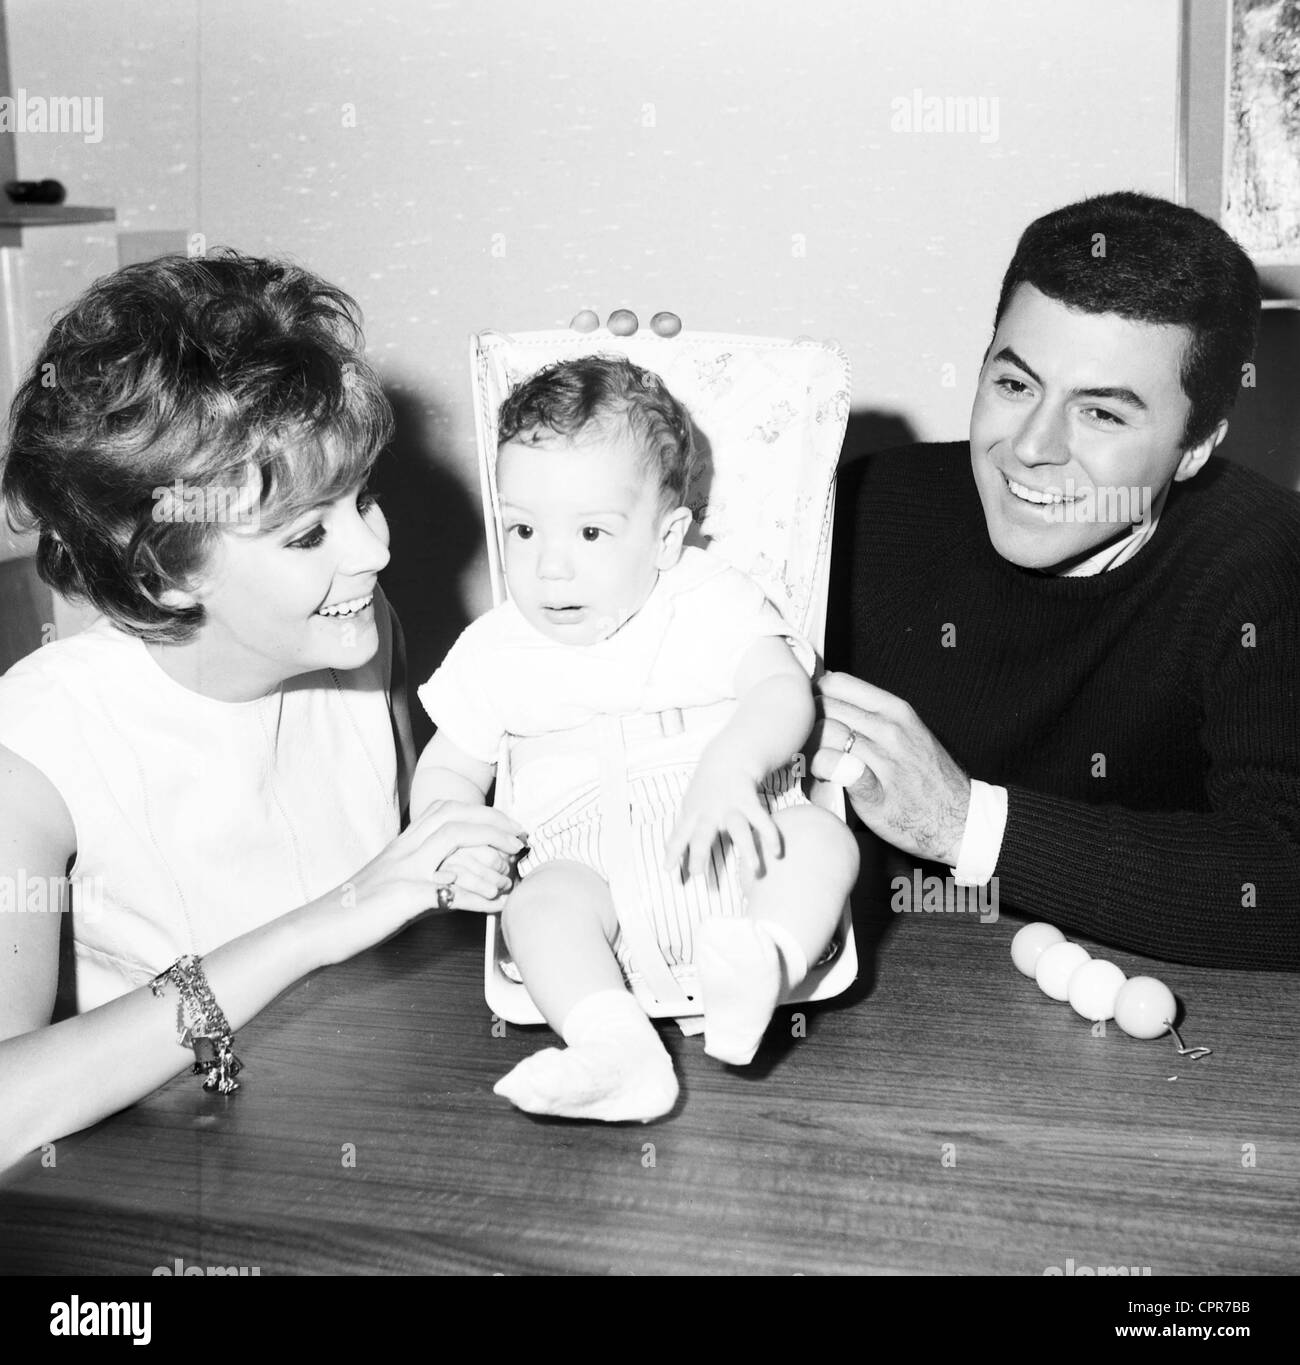 james darren pics